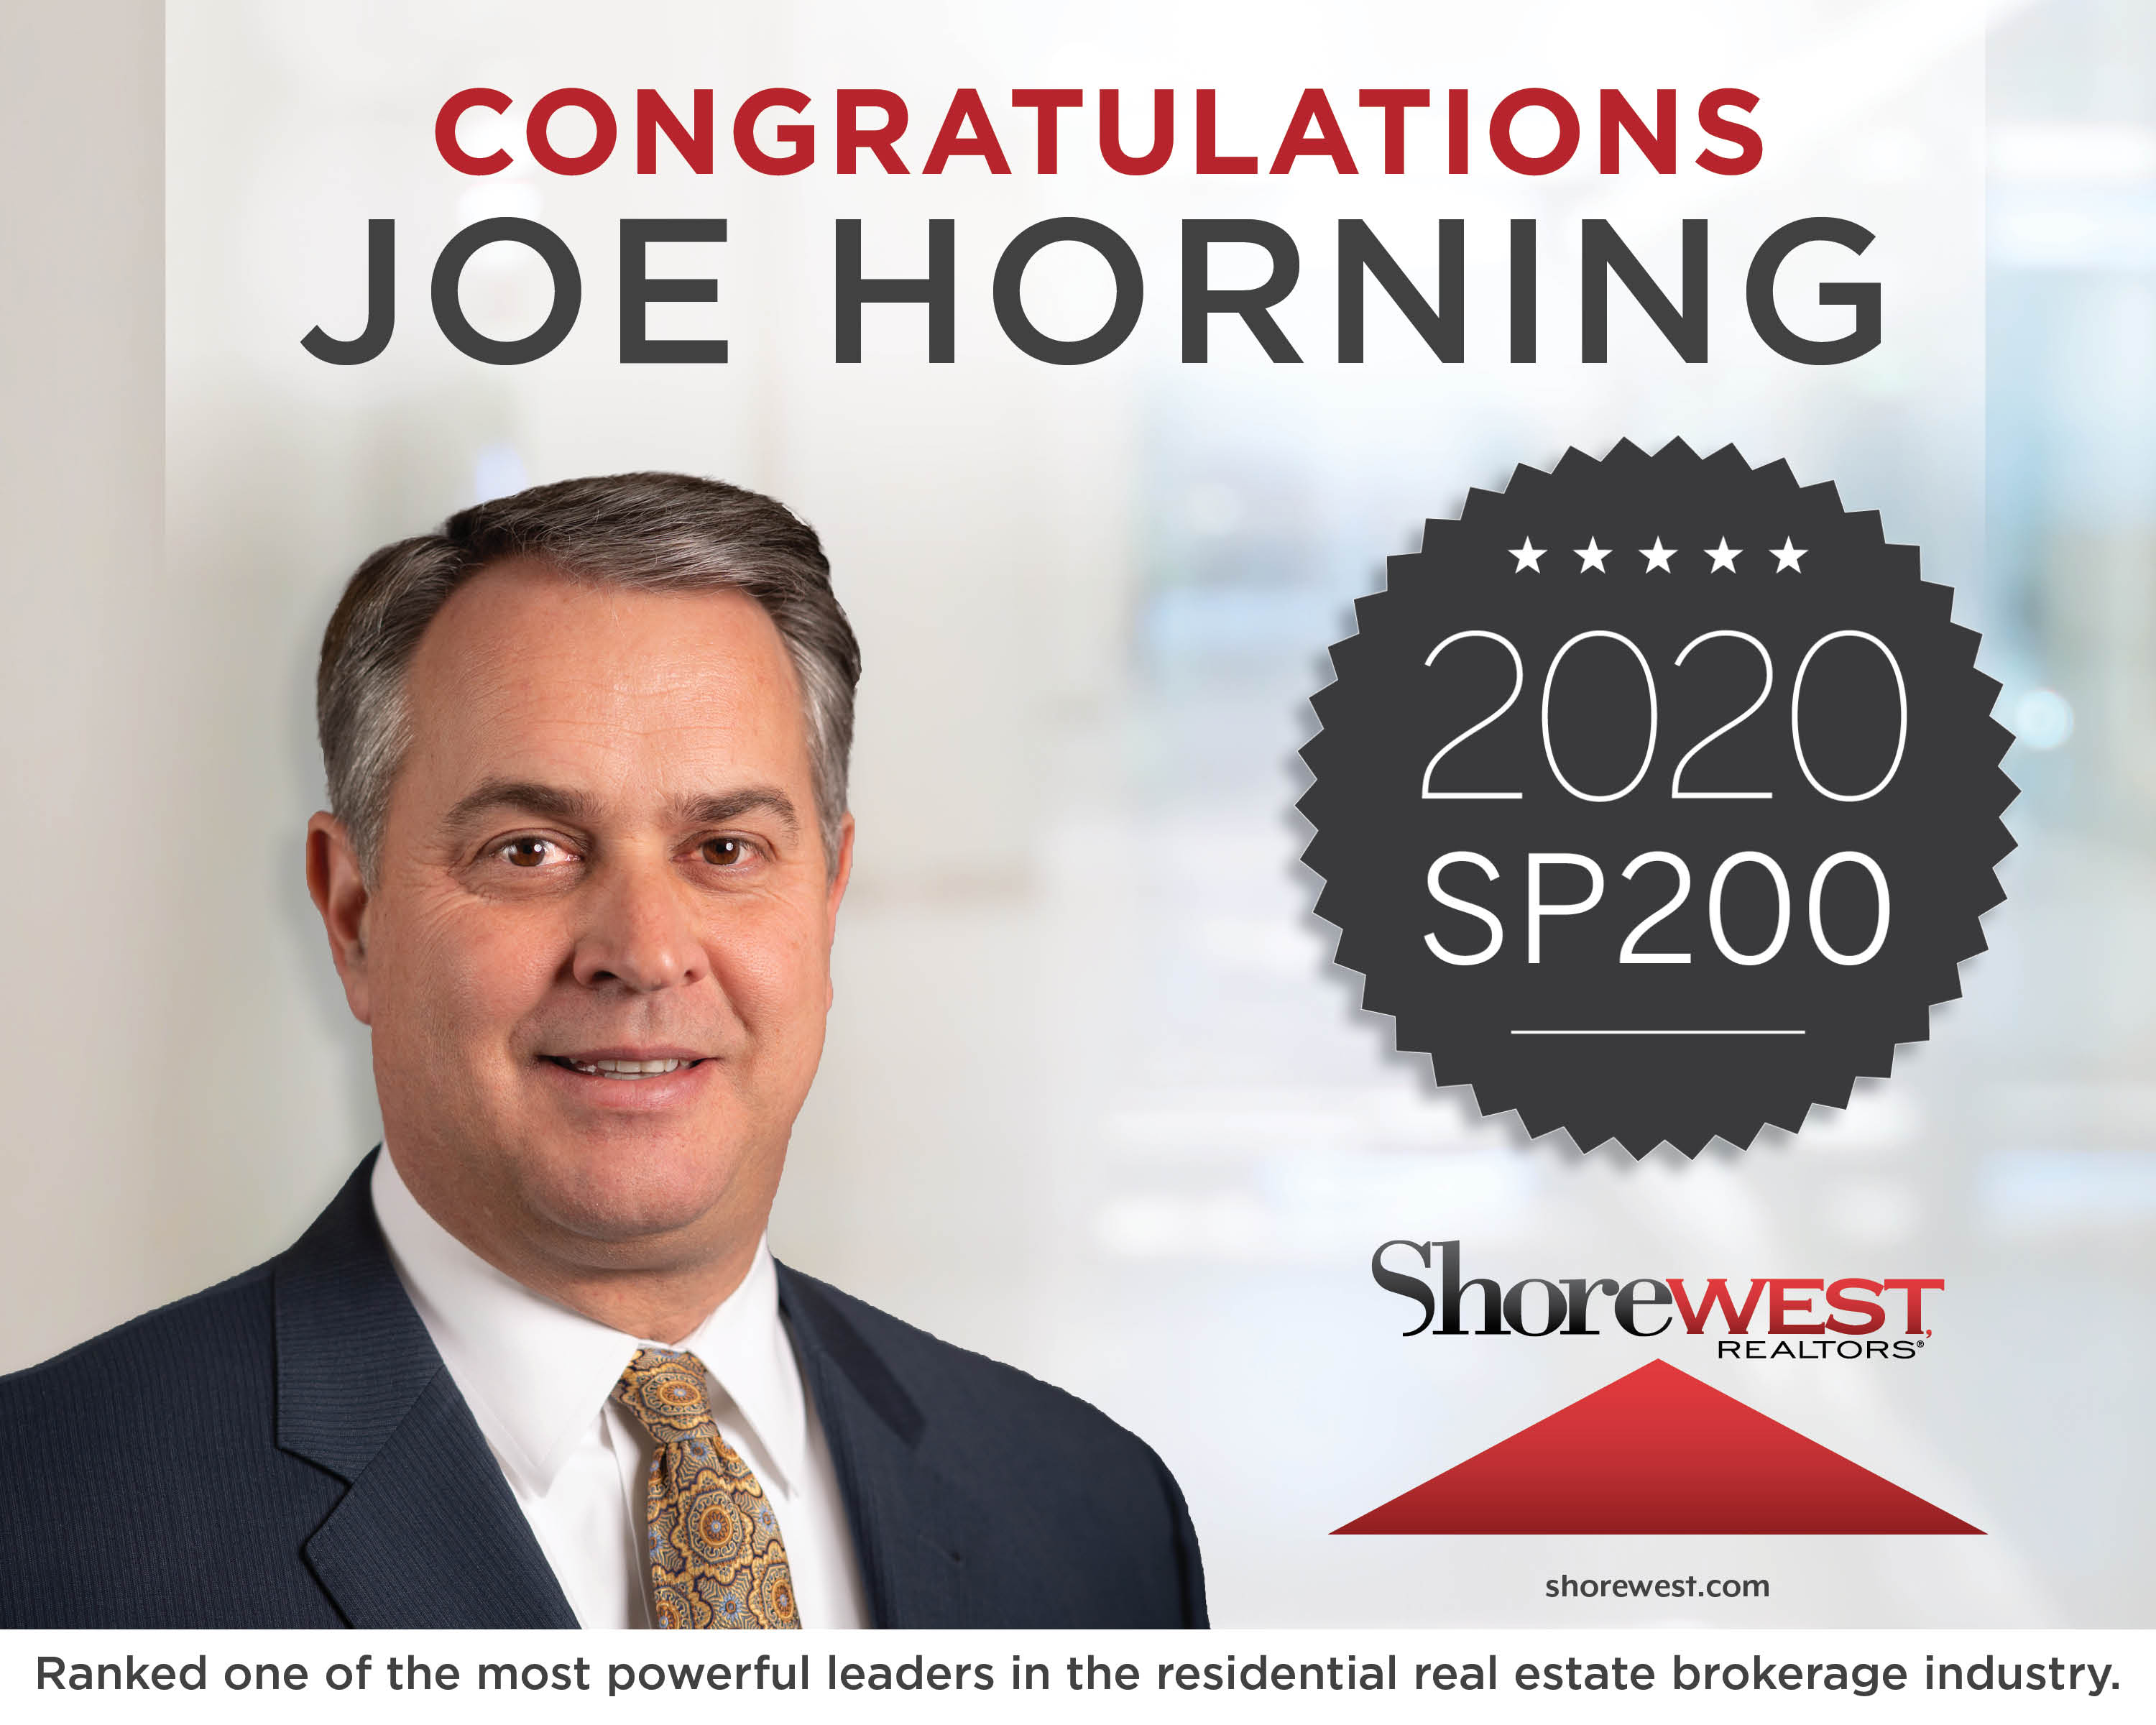 Joseph Horning Ranks in Top 100 of The Most Powerful People in Residential Real Estate 2020?